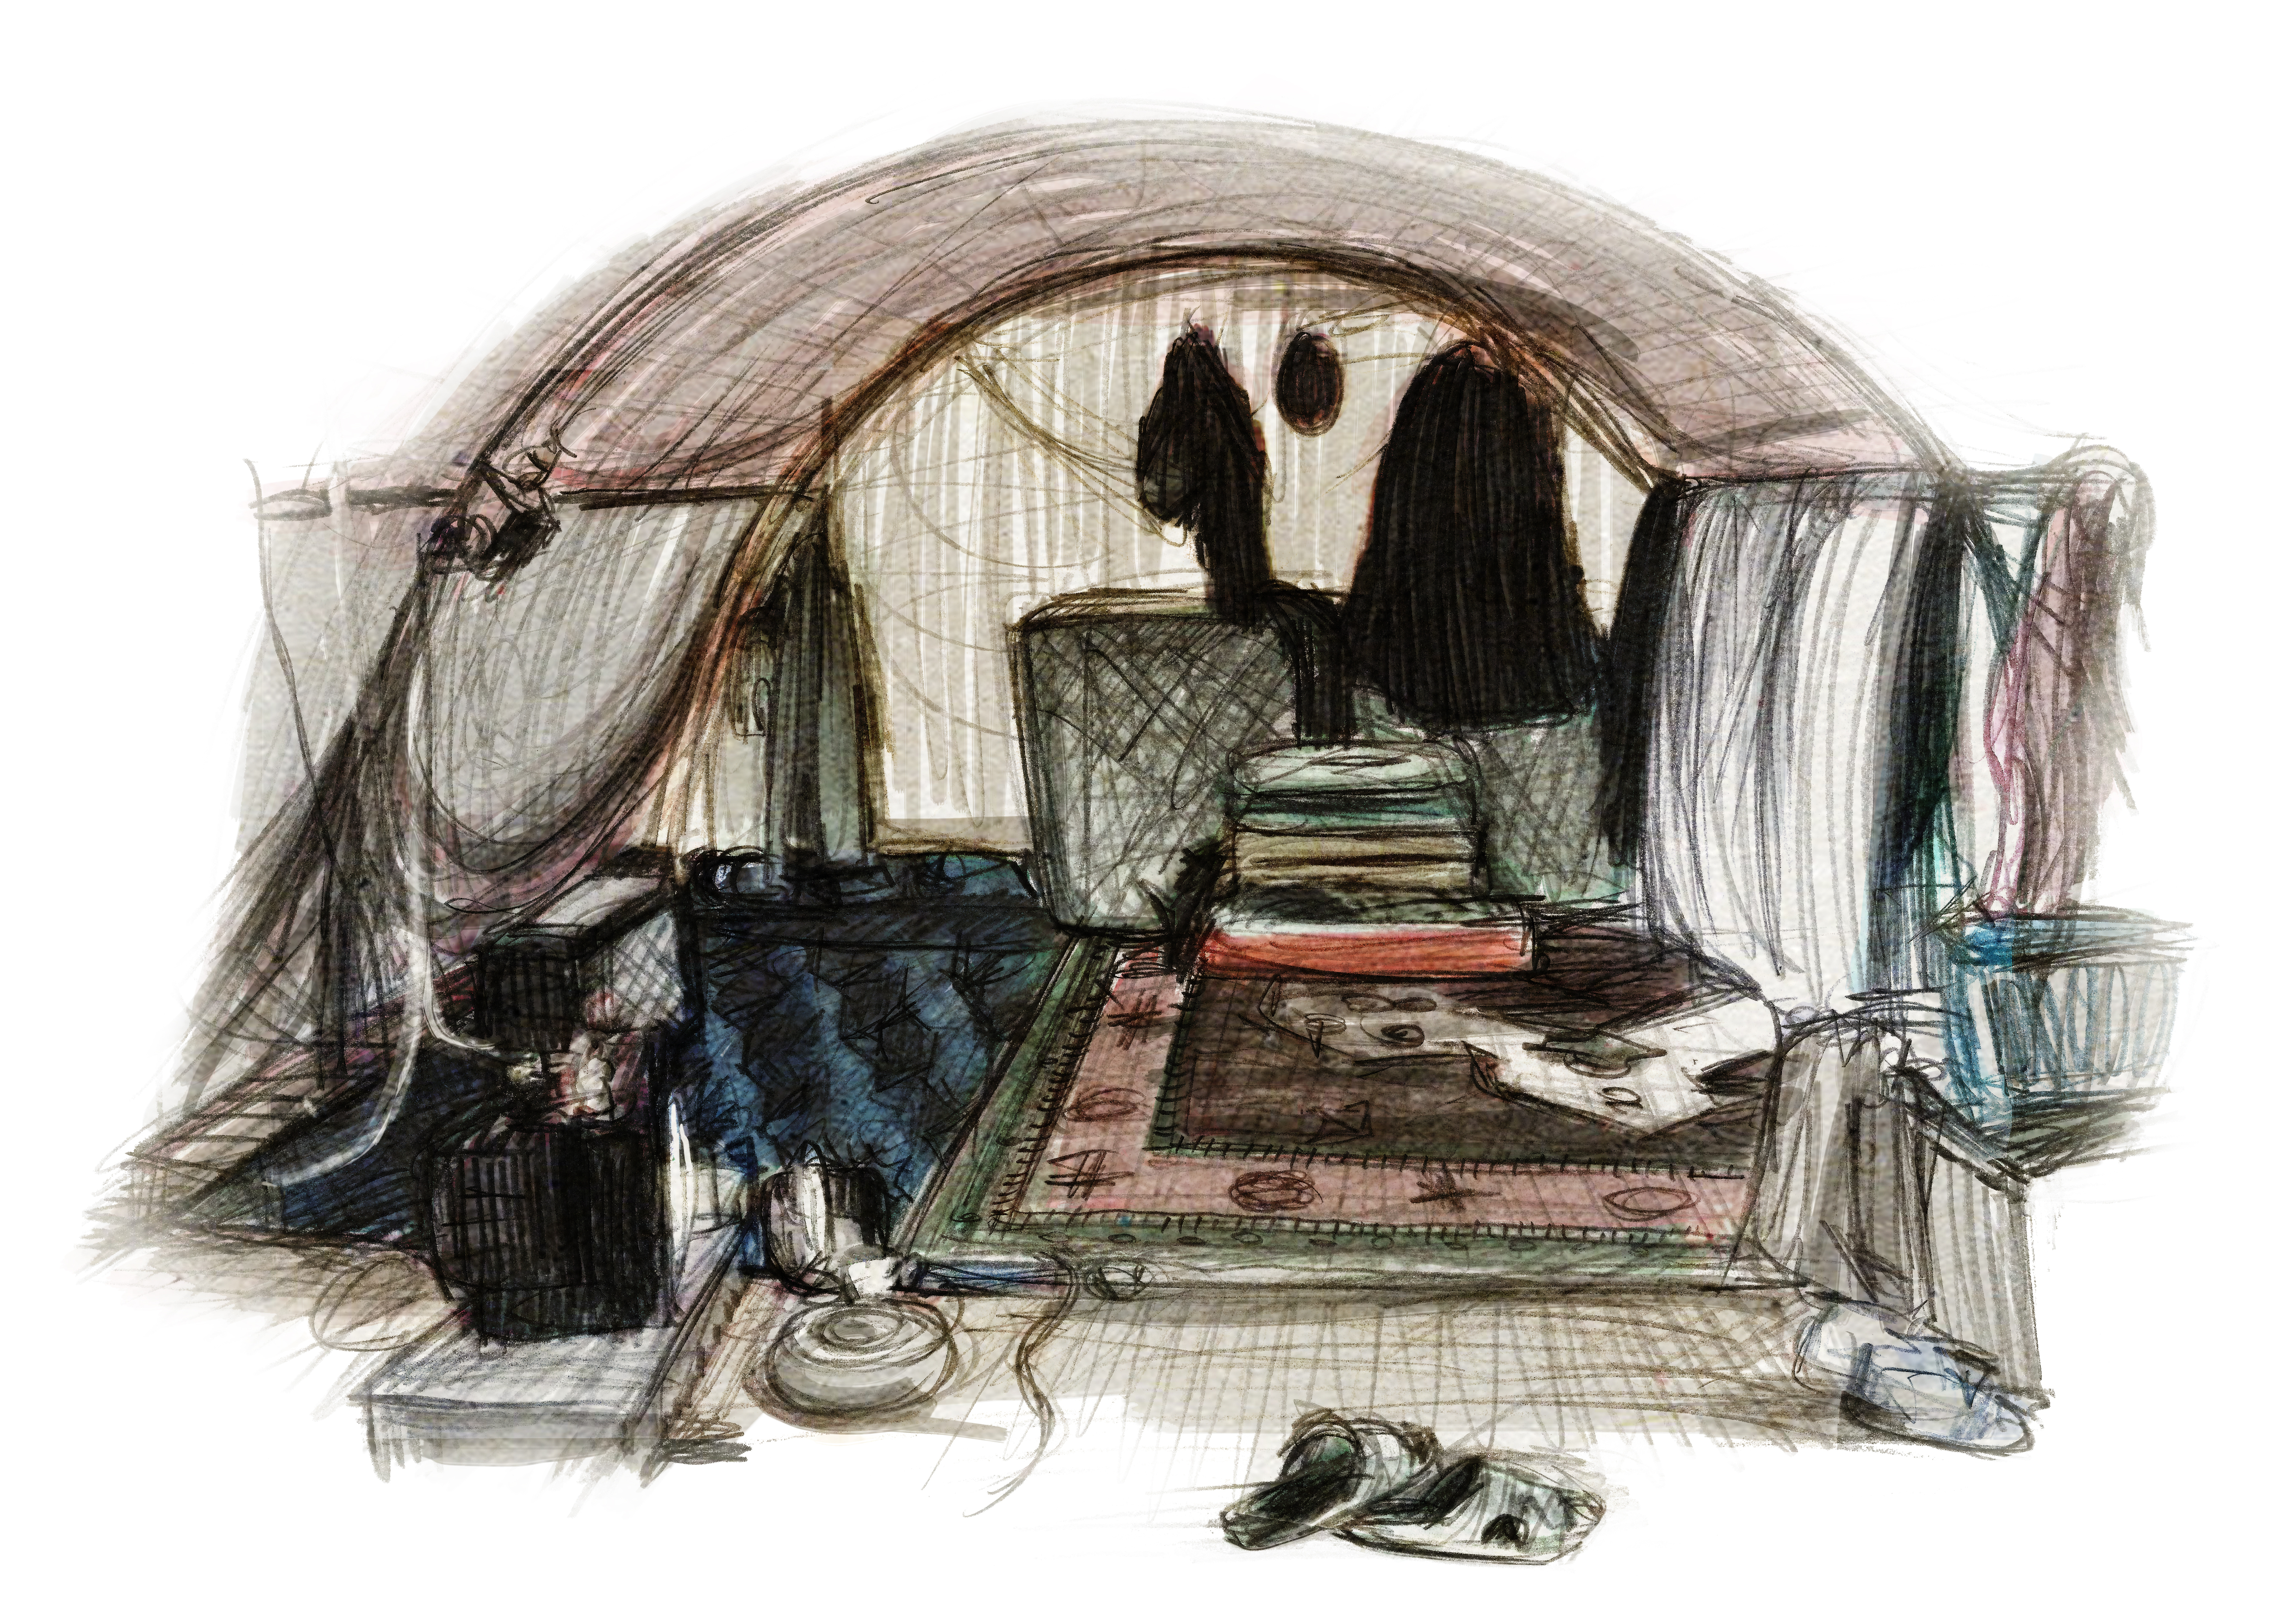 Drawing of interior of refugee tent